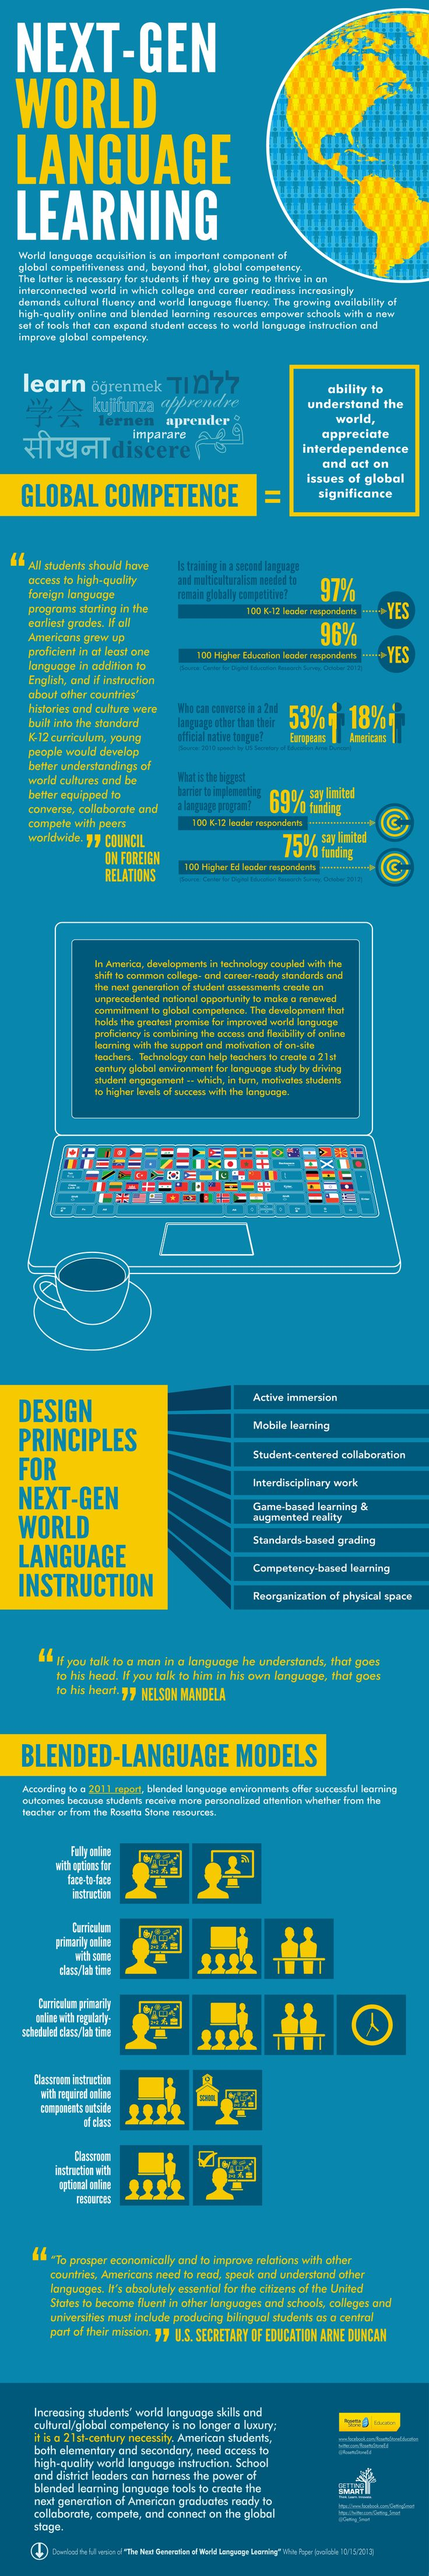 top ideas about world languages language infographic next gen world language learning getting smart by getting smart staff